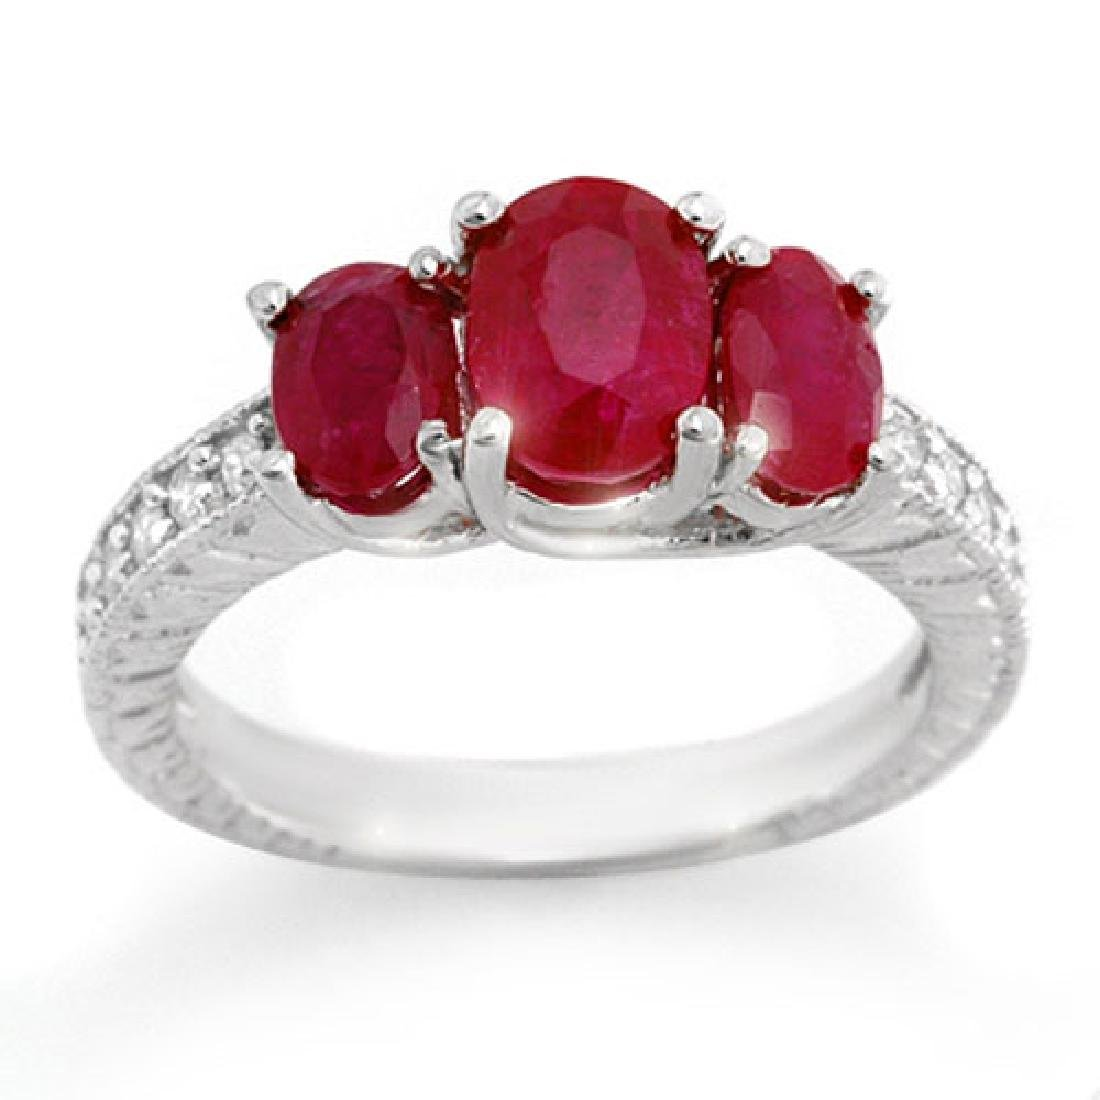 3.75 CTW Ruby & Diamond Ring 10K White Gold